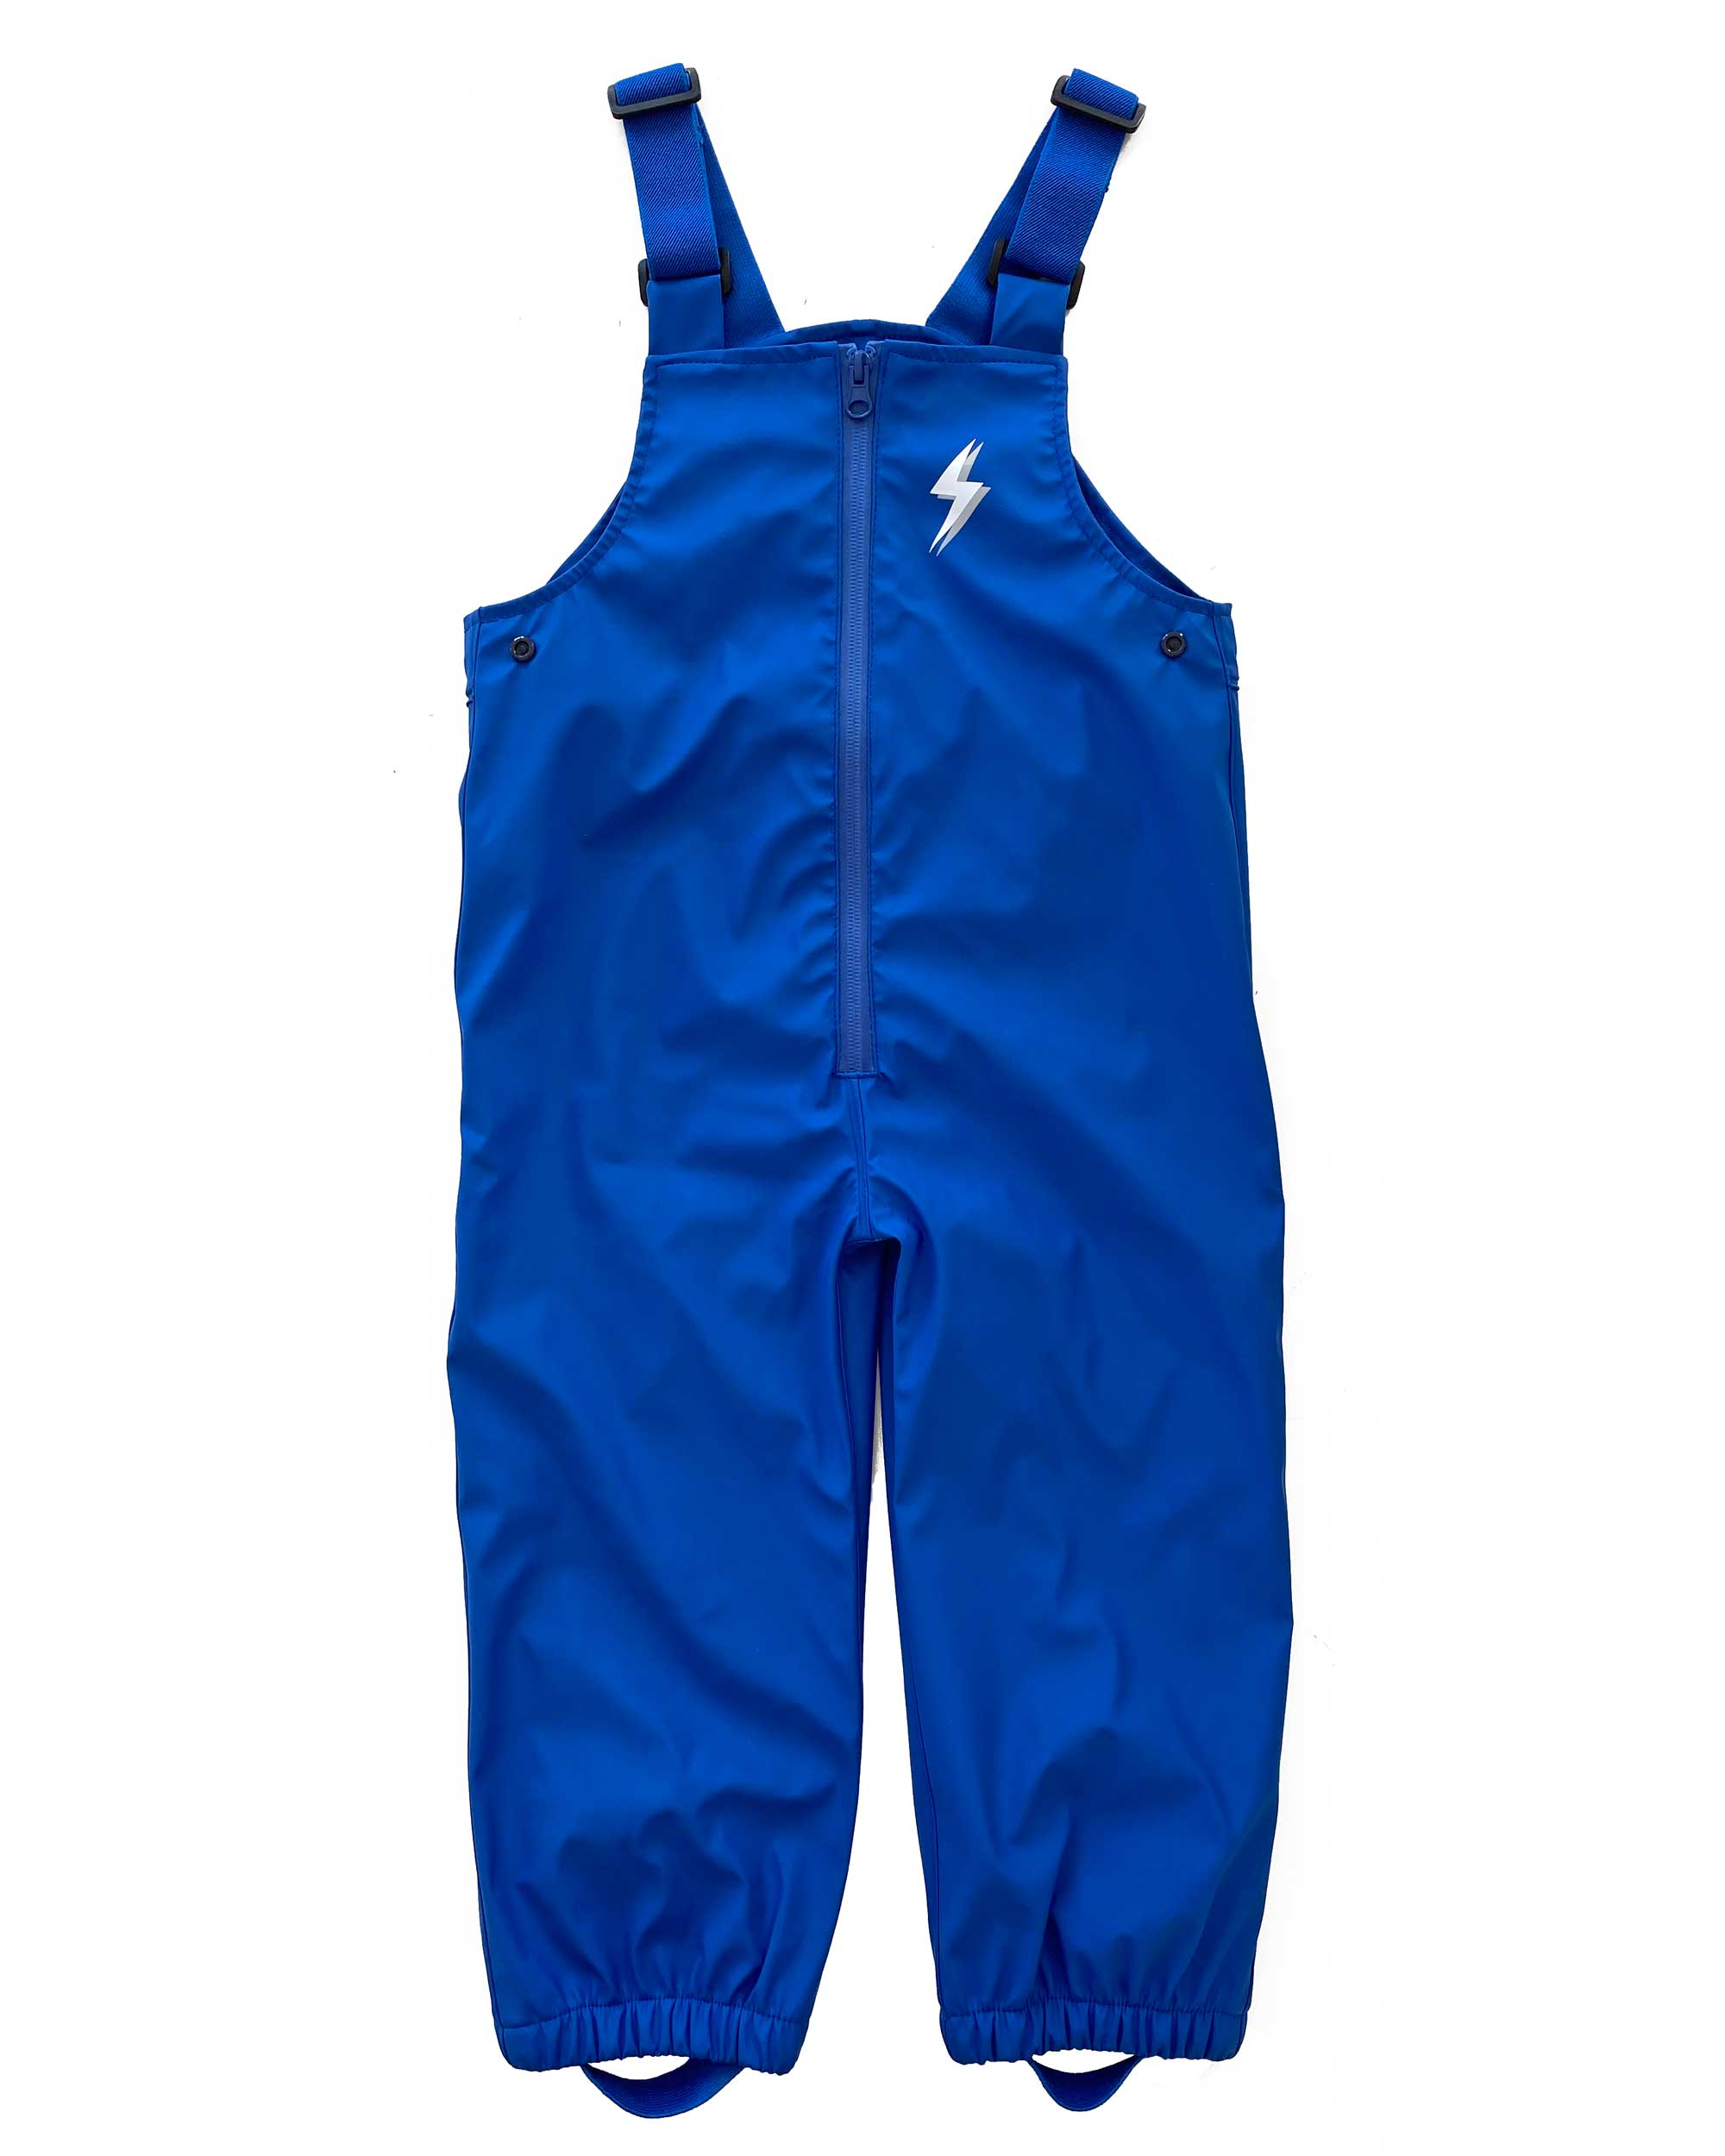 Splasher Blue Waterproof Overalls